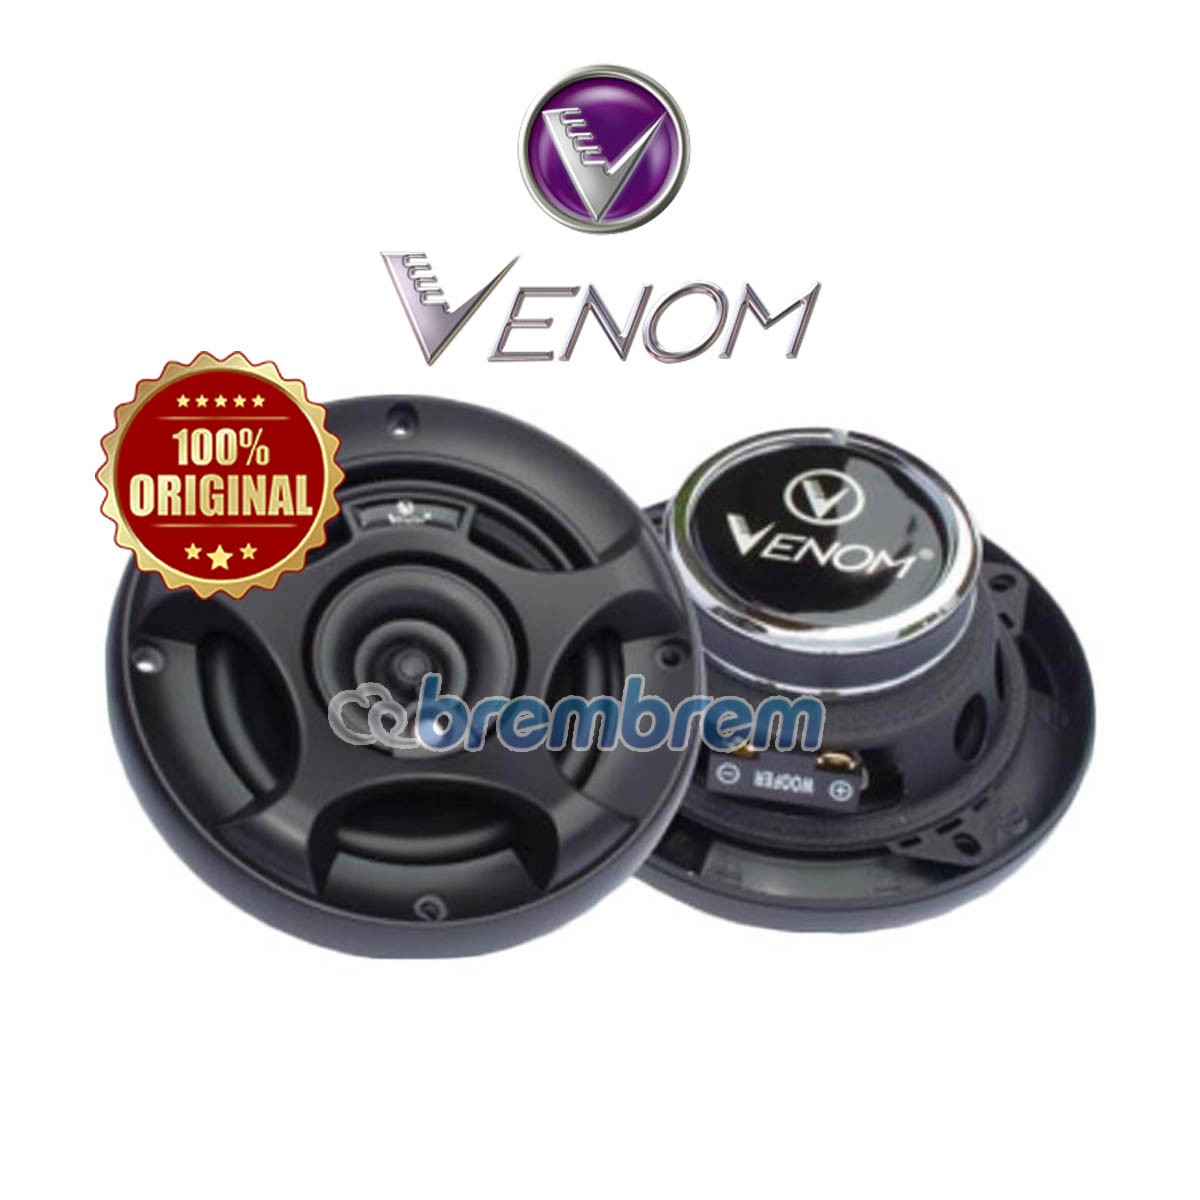 NEW VENOM X SERIES VX 402B - SPEAKER COAXIAL